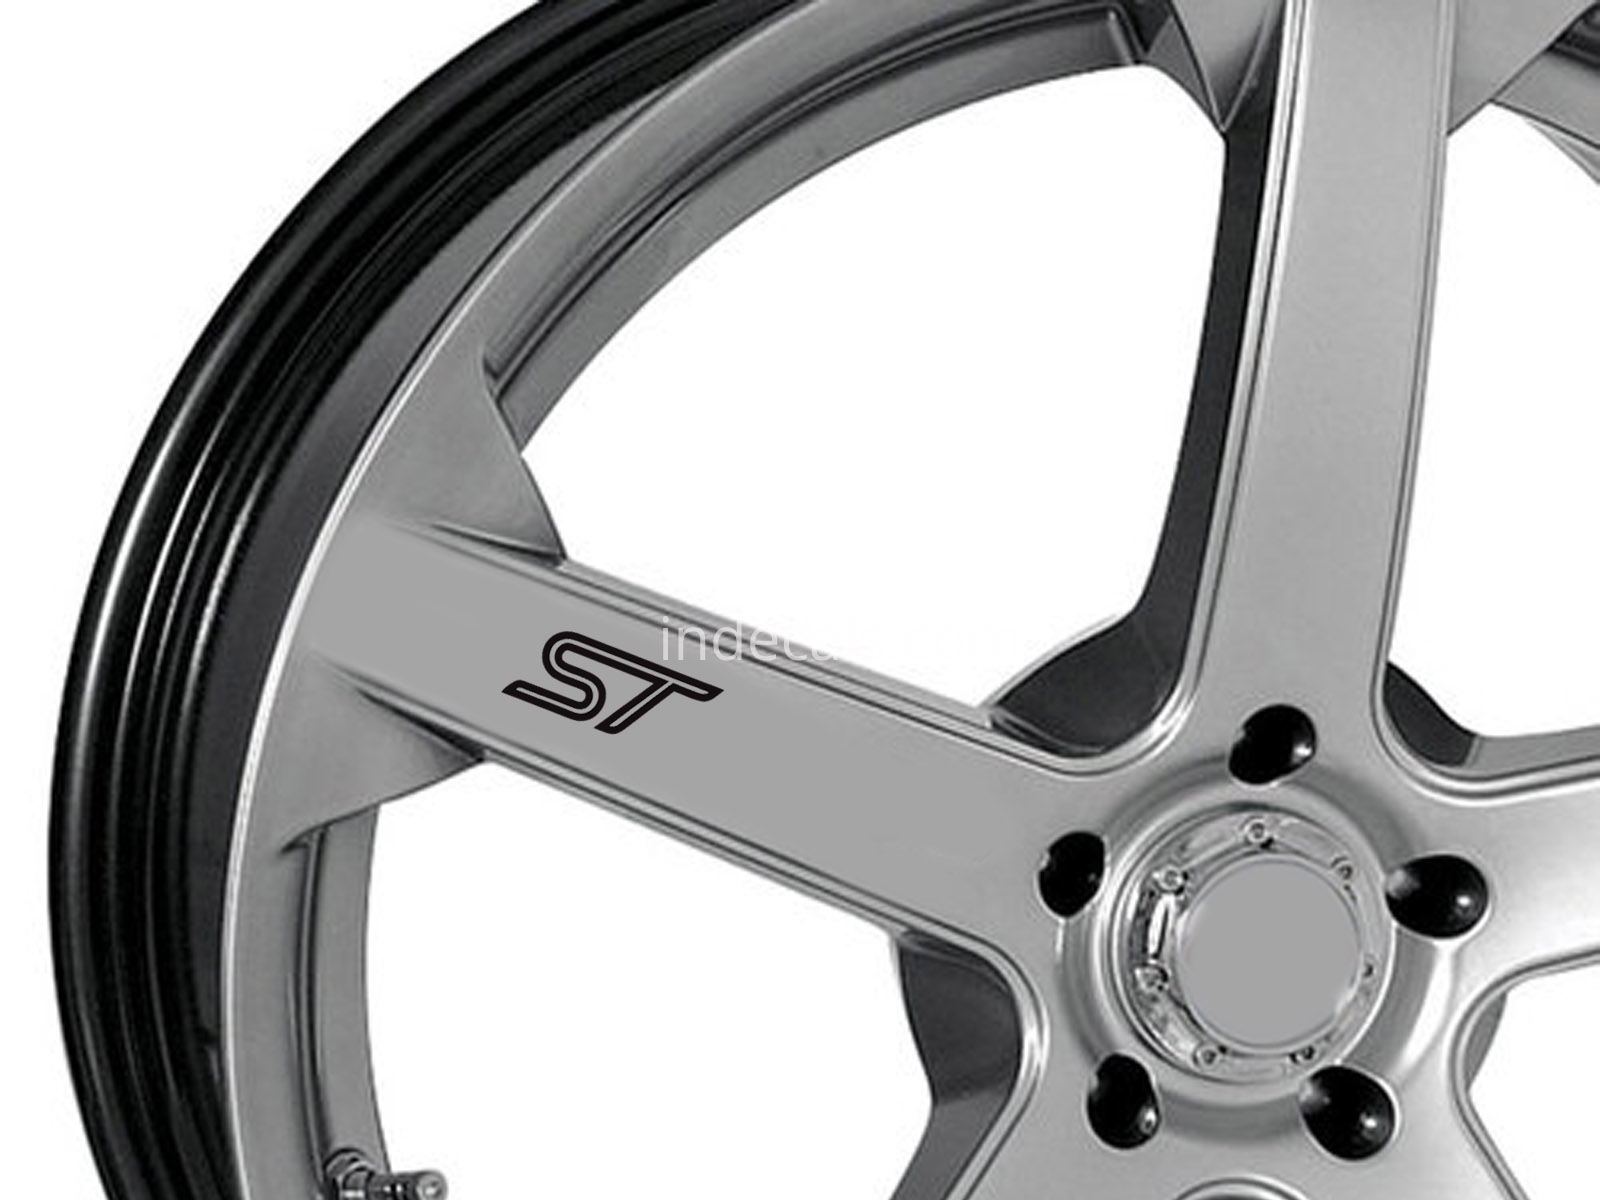 6 x Ford ST Stickers for Wheels - Black